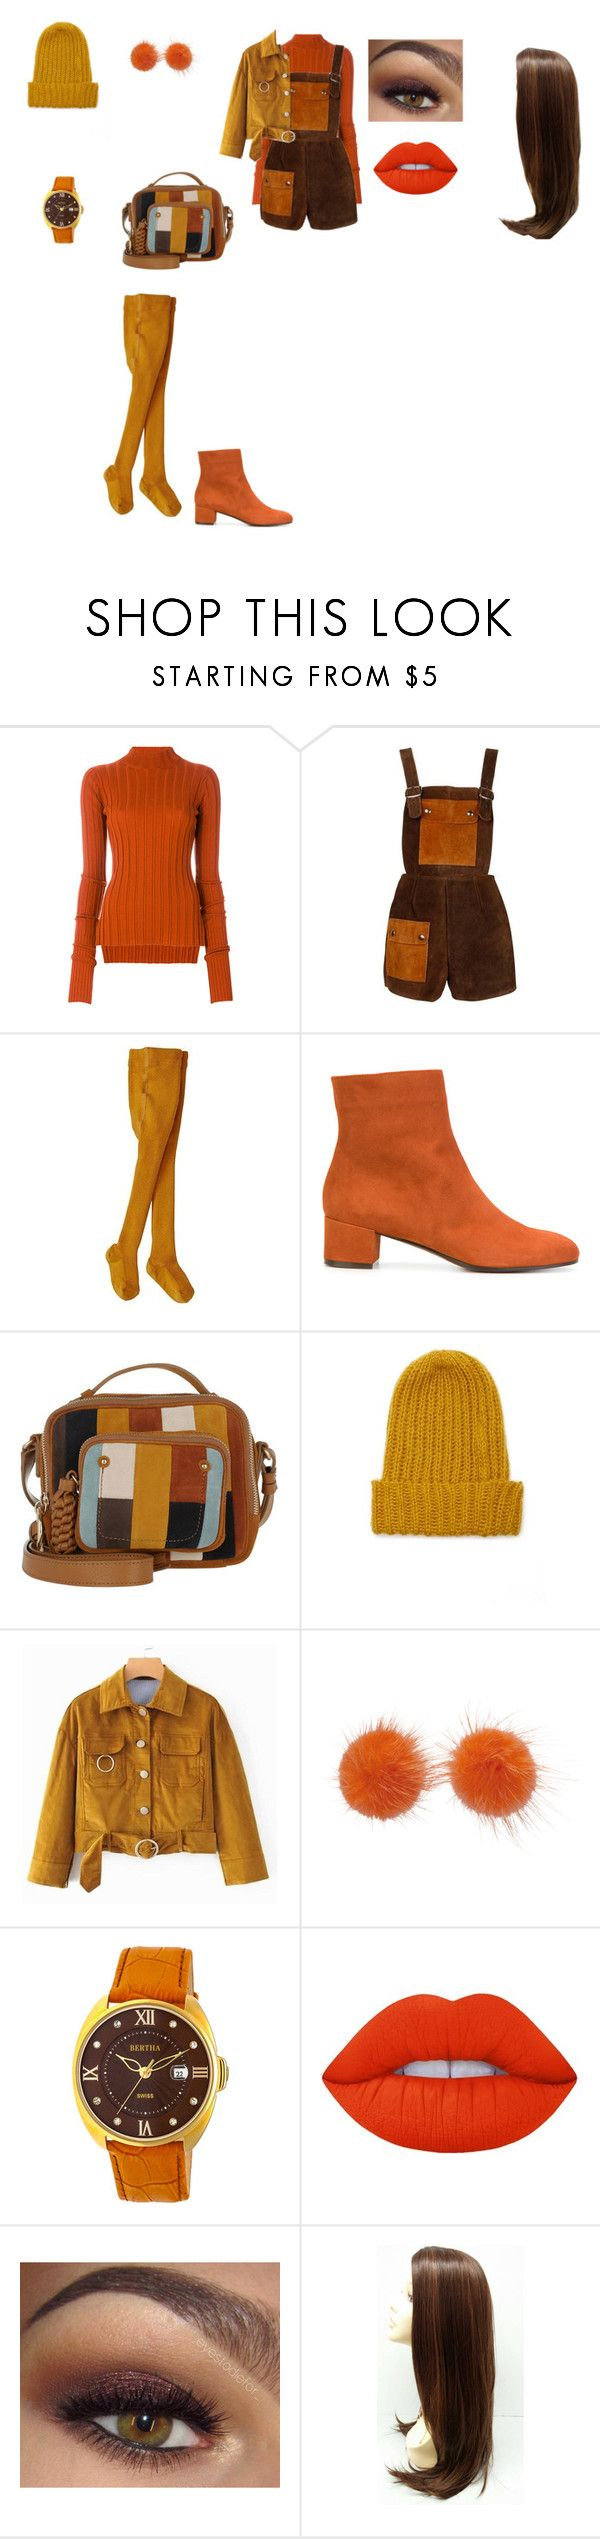 """fall outfit"" by helena94-1 on Polyvore featuring Theory, L'Autre Chose, See by Chloé, Forever 21, Wild & Woolly, Bertha, Lime Crime and polyvorefashion"